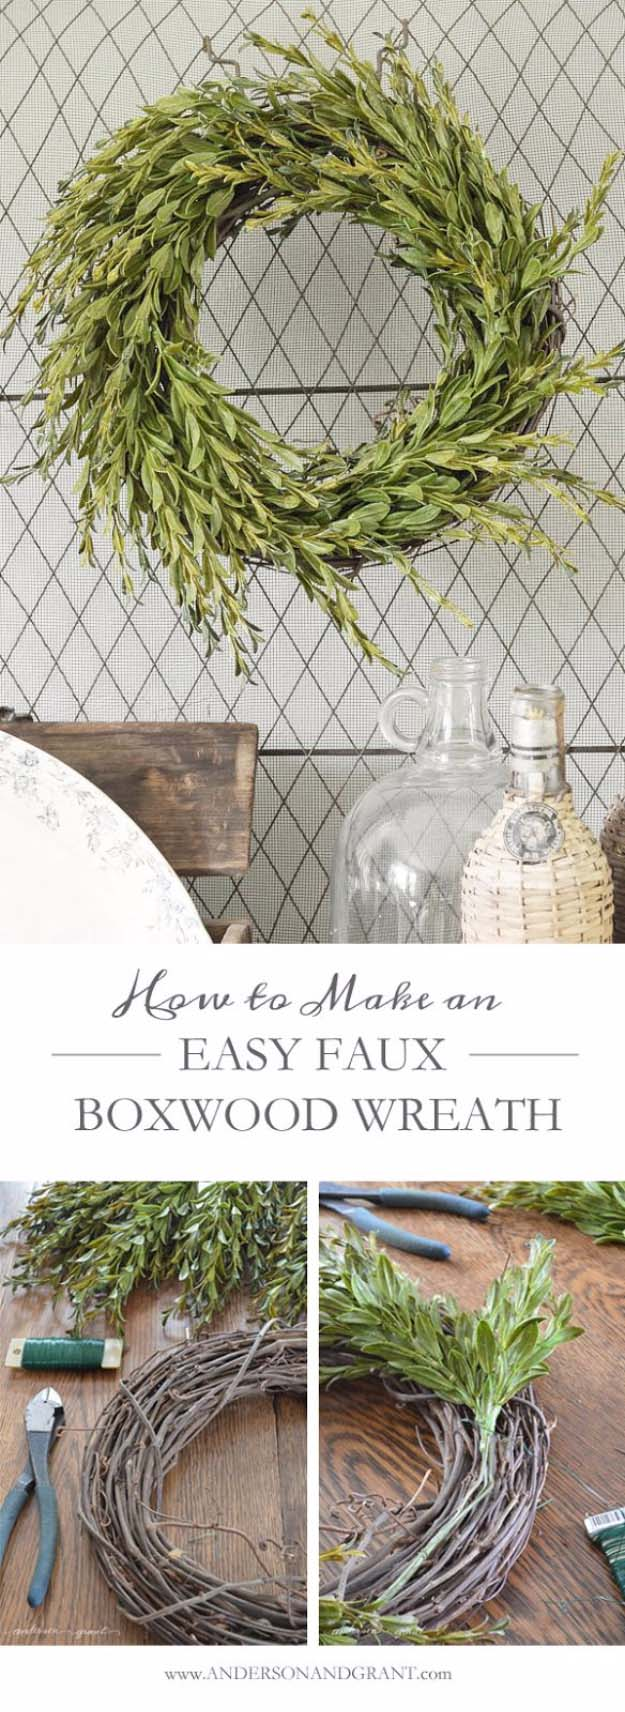 DIY Holiday Wreaths Make Awesome Homemade Christmas Decorations for Your Front Door   Cool Crafts and DIY Projects by DIY JOY   Easy Faux Boxwood Wreath #diy